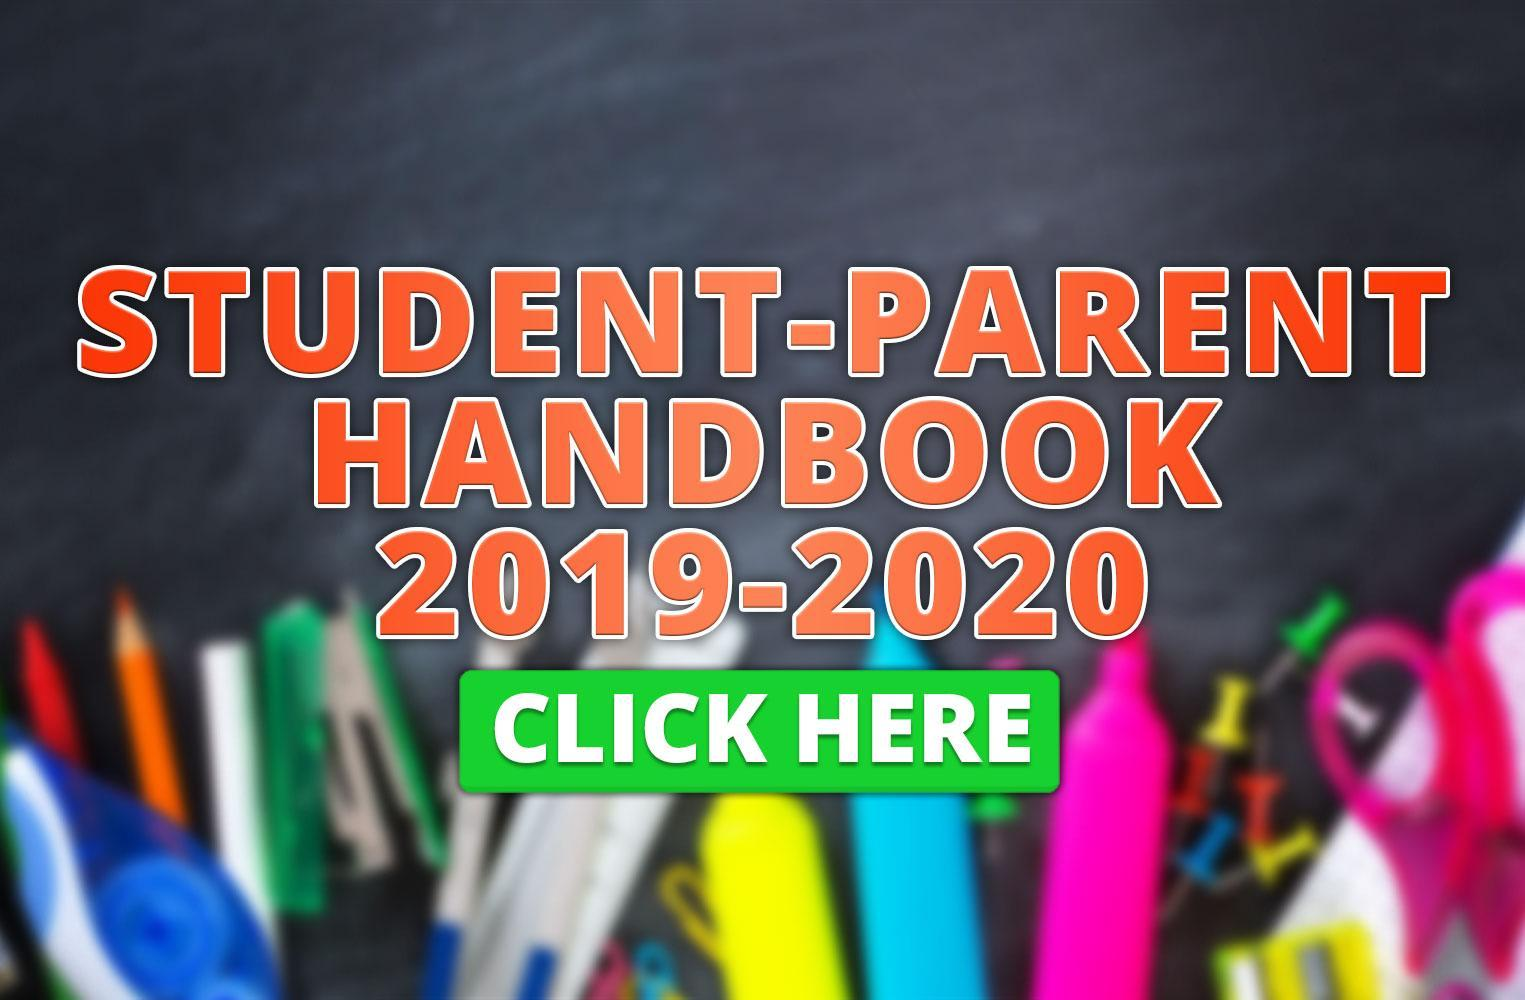 Mabel Paine Student-Parent Handbook (2019-2020)